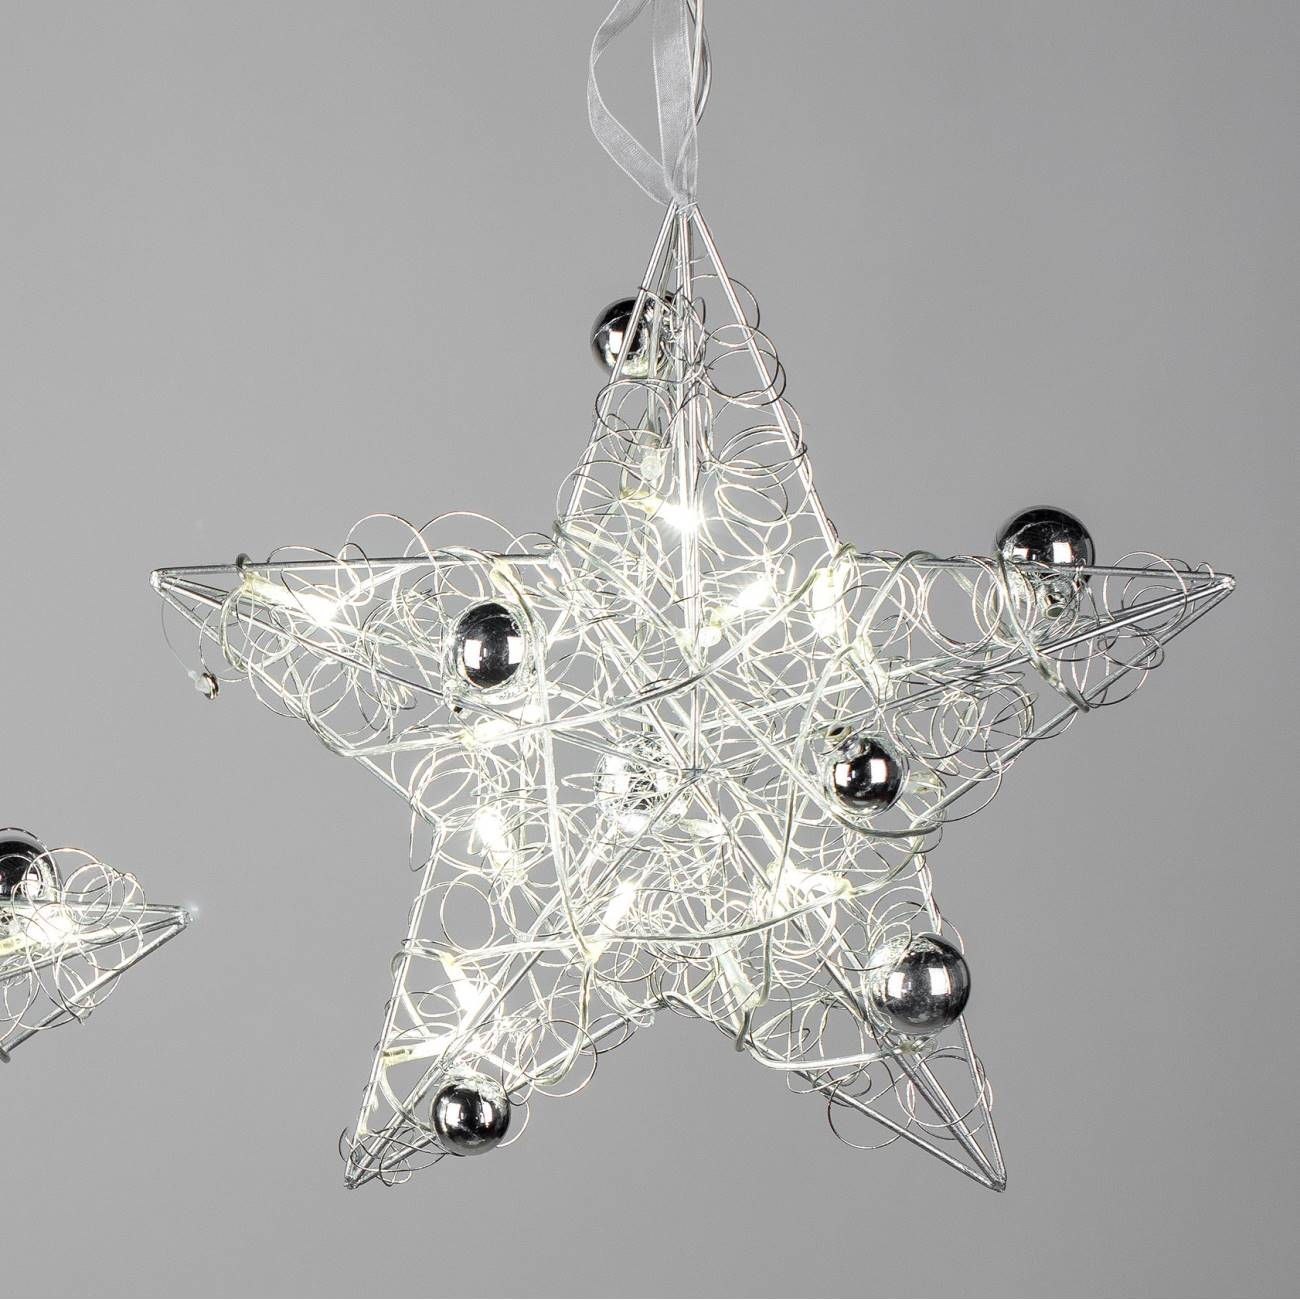 led deko h nger star drahtstern d 30cm metall silber formano w17 ebay. Black Bedroom Furniture Sets. Home Design Ideas